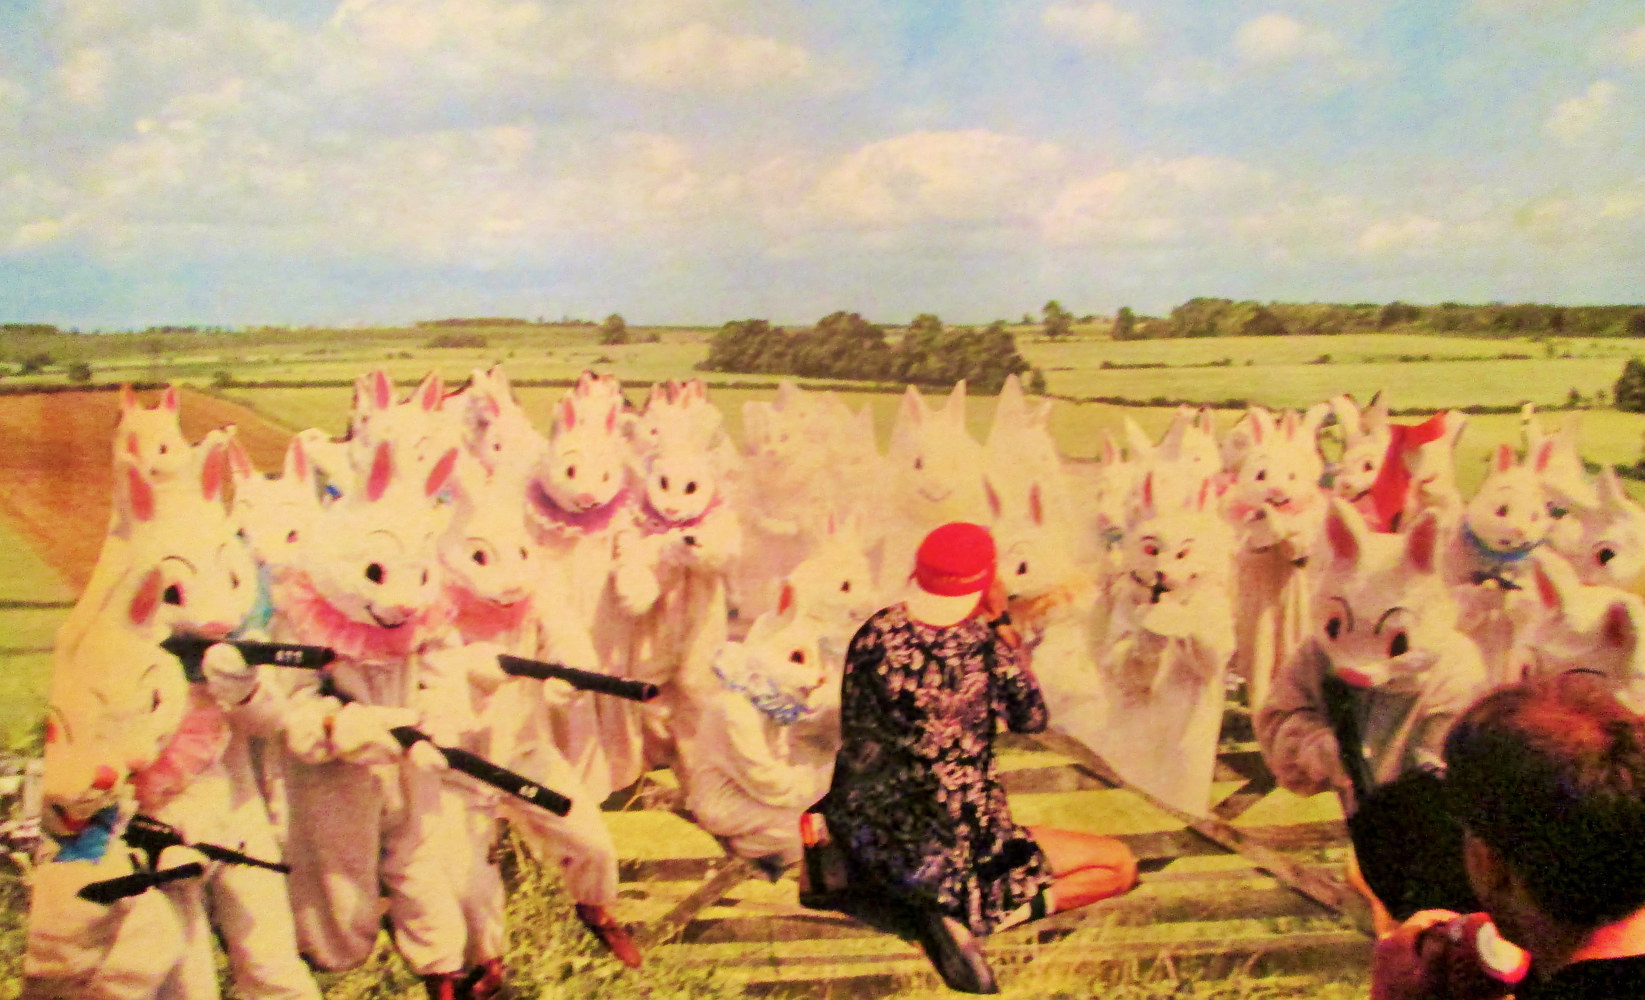 The Revenge of the Crazed Rabbits  by Jo Ann Tunnell Muench